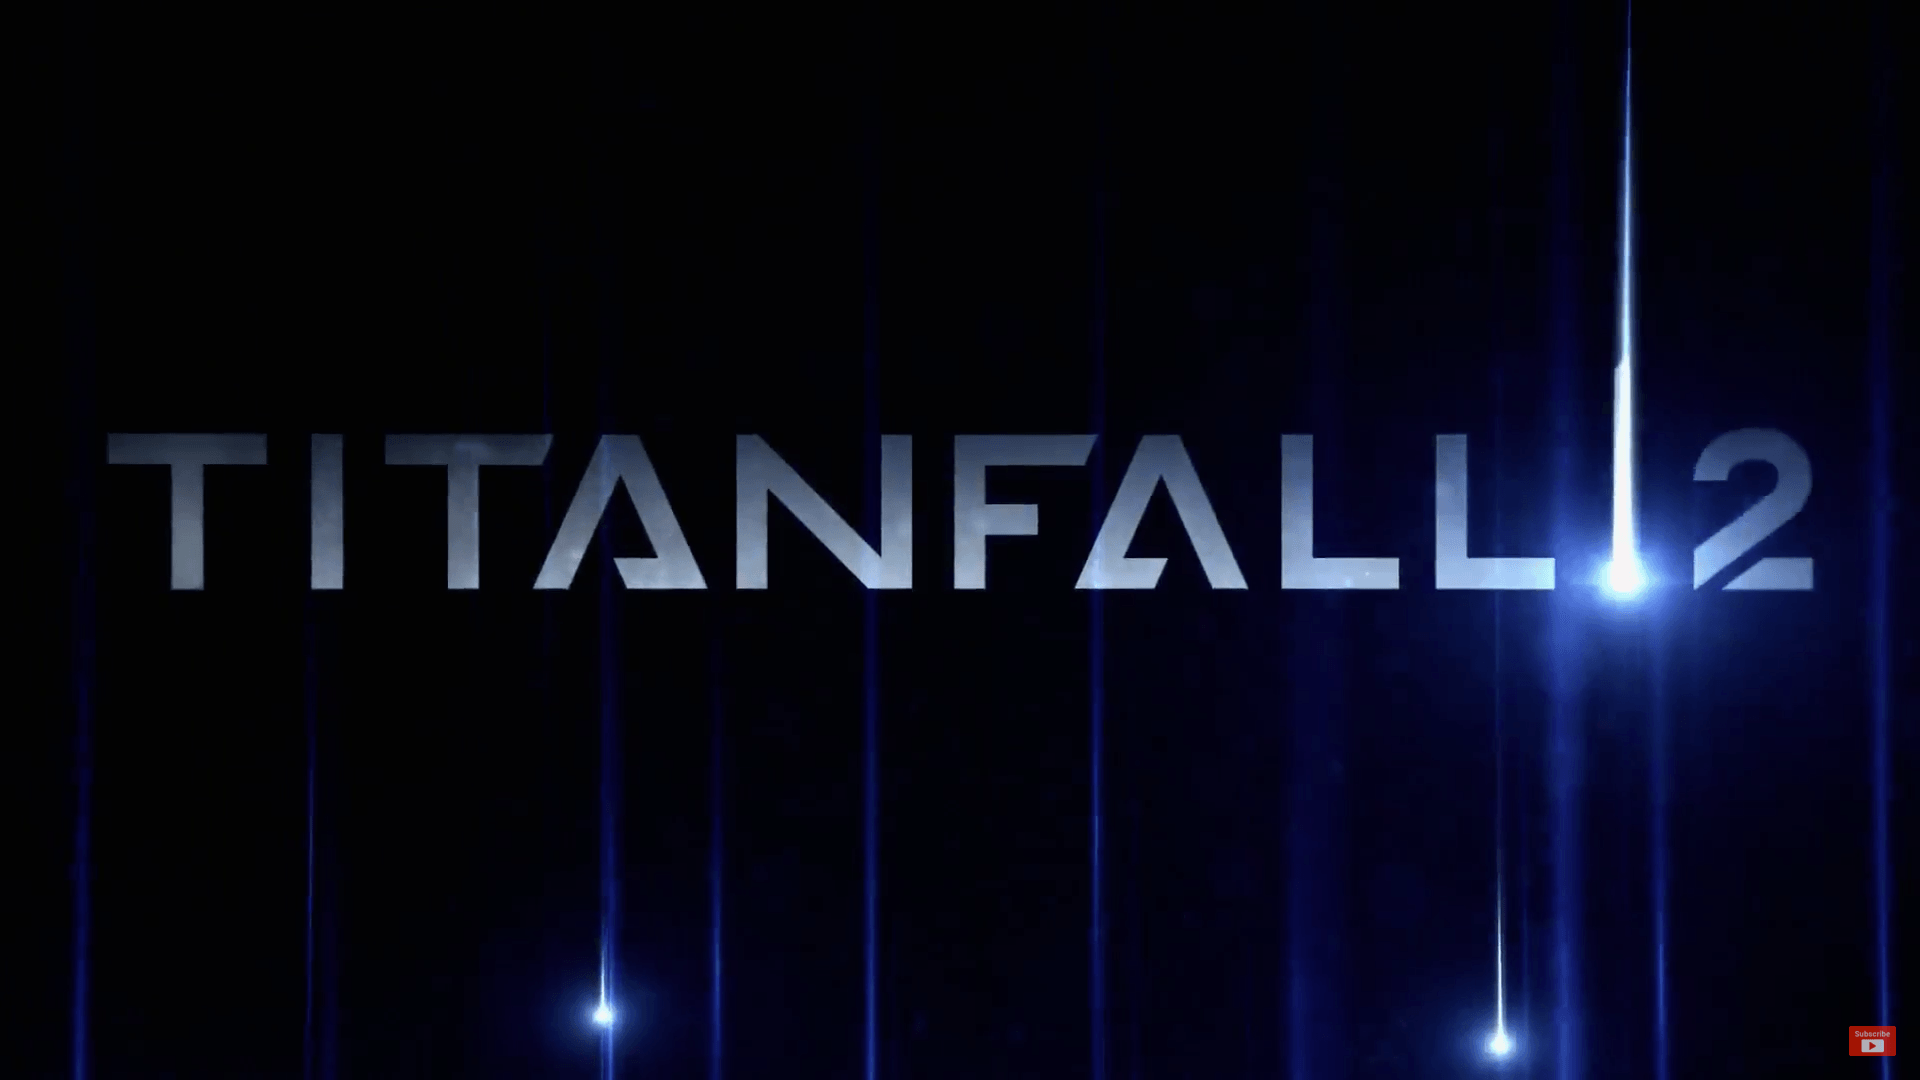 Titanfall 2 Wallpapers Image Photos Pictures Backgrounds